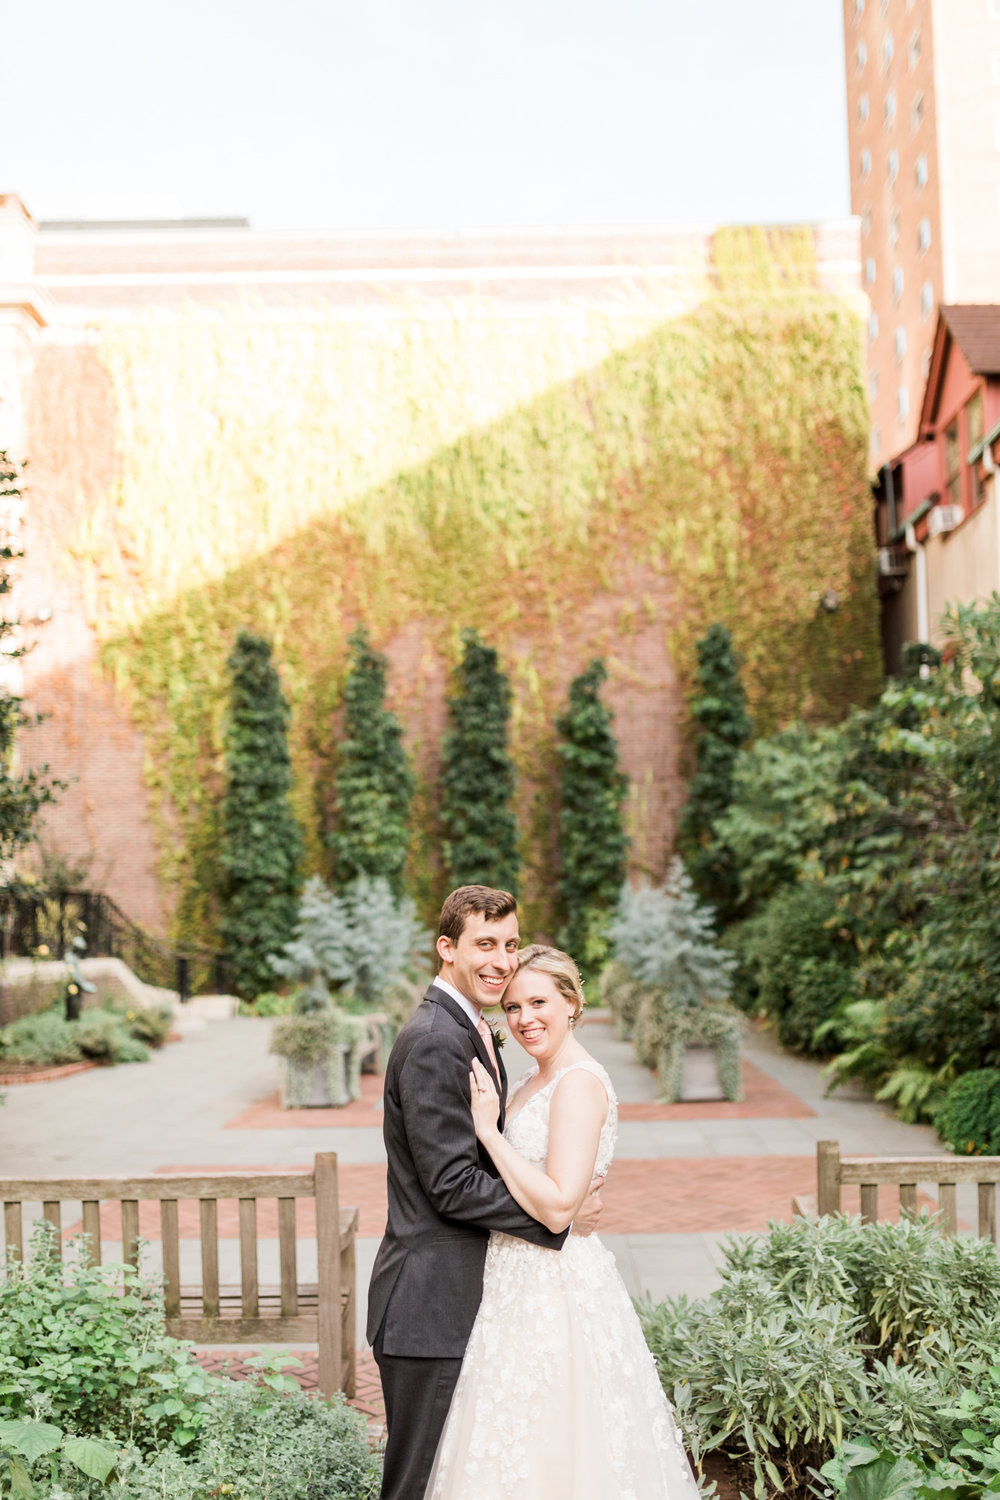 haley-richter-photography-autumn-college-of-physicians-wedding-philadelphia--123.jpg